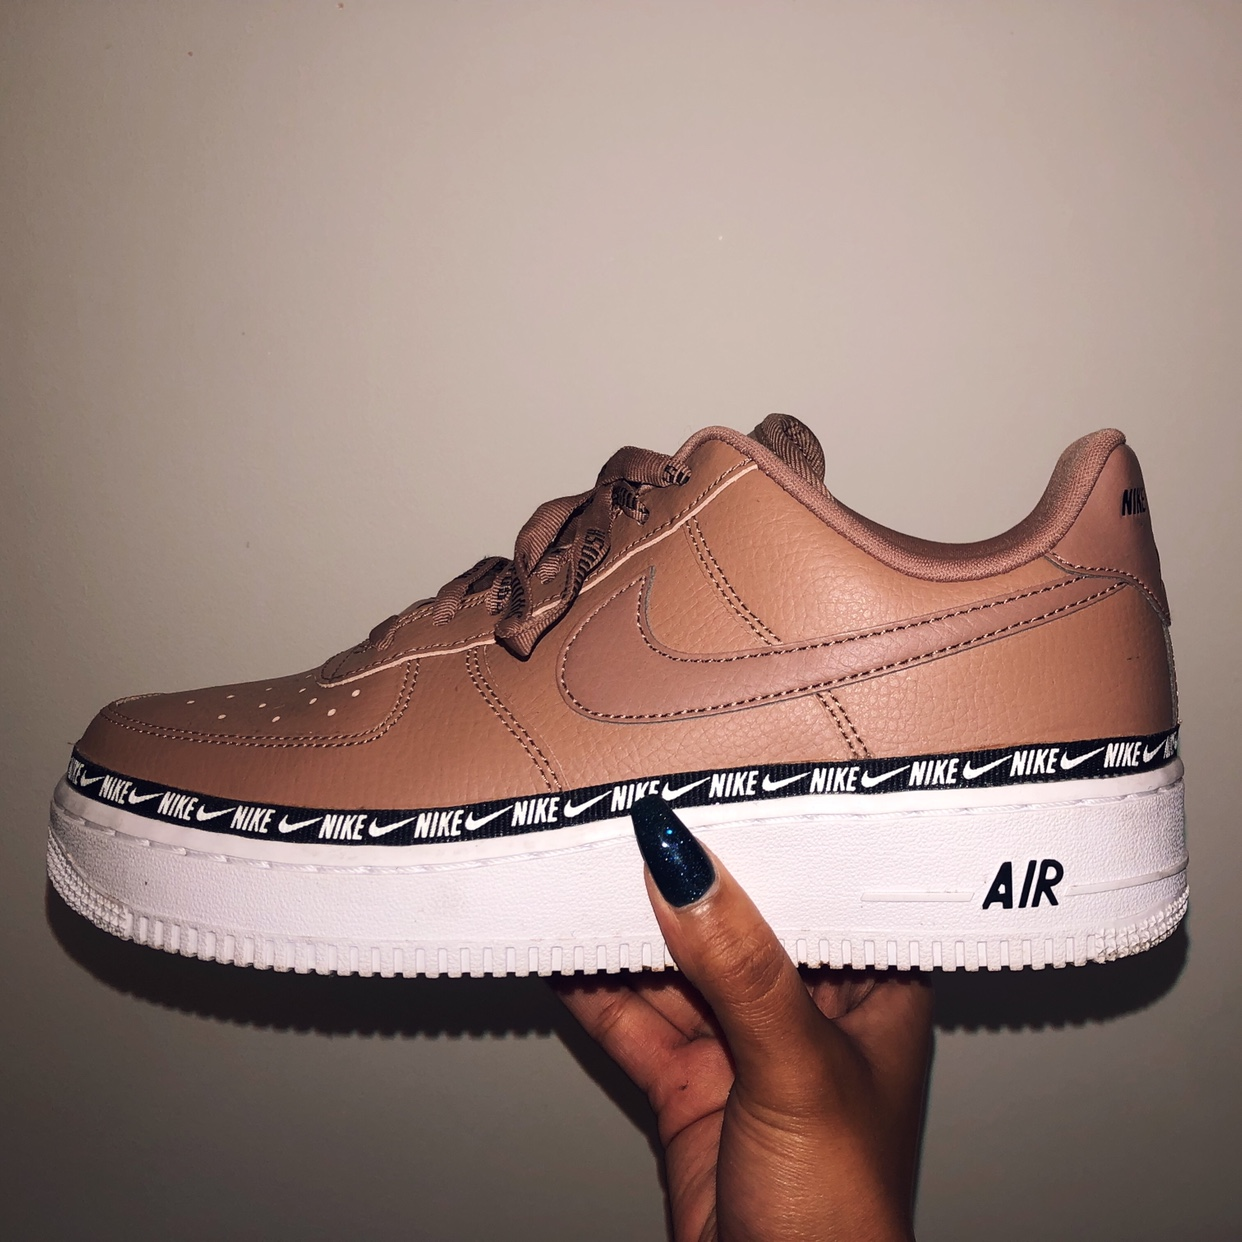 Nike Air Force 1 '07 SPECIAL EDITION Premium Logo Depop